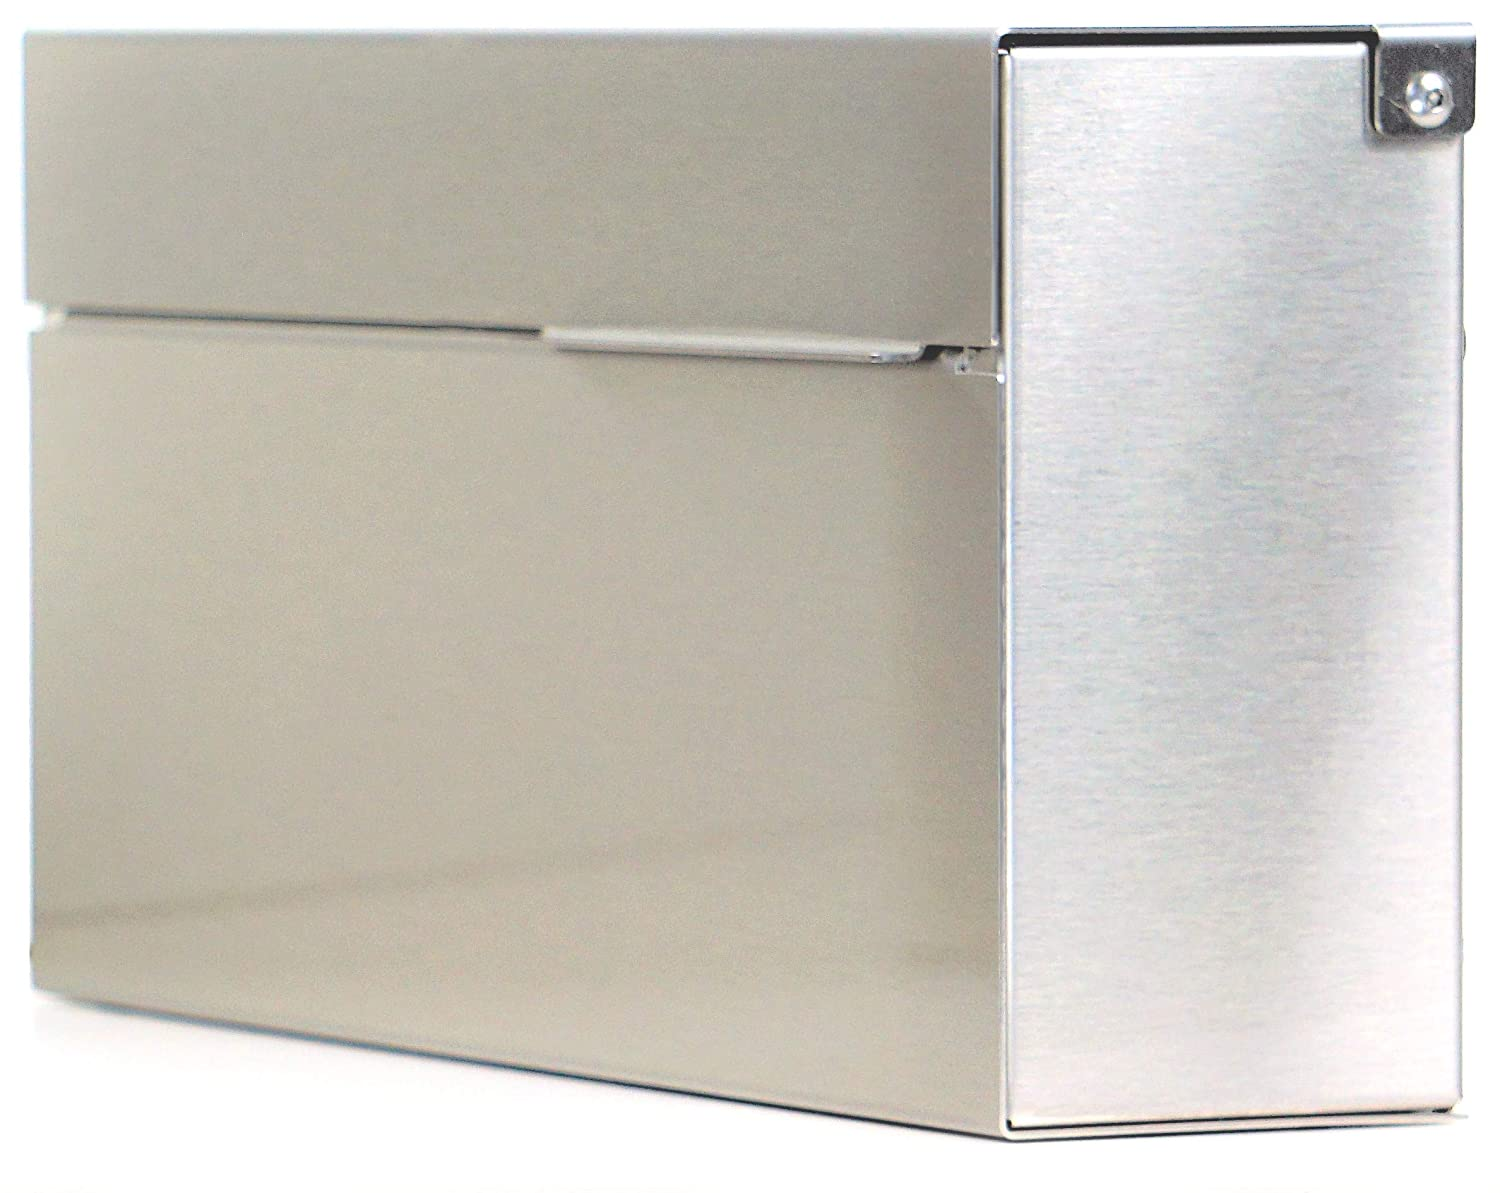 Engraved Stainless Steel Modern Mailbox Personalized Wall-Mount Mailbox Vsons Design Louis S